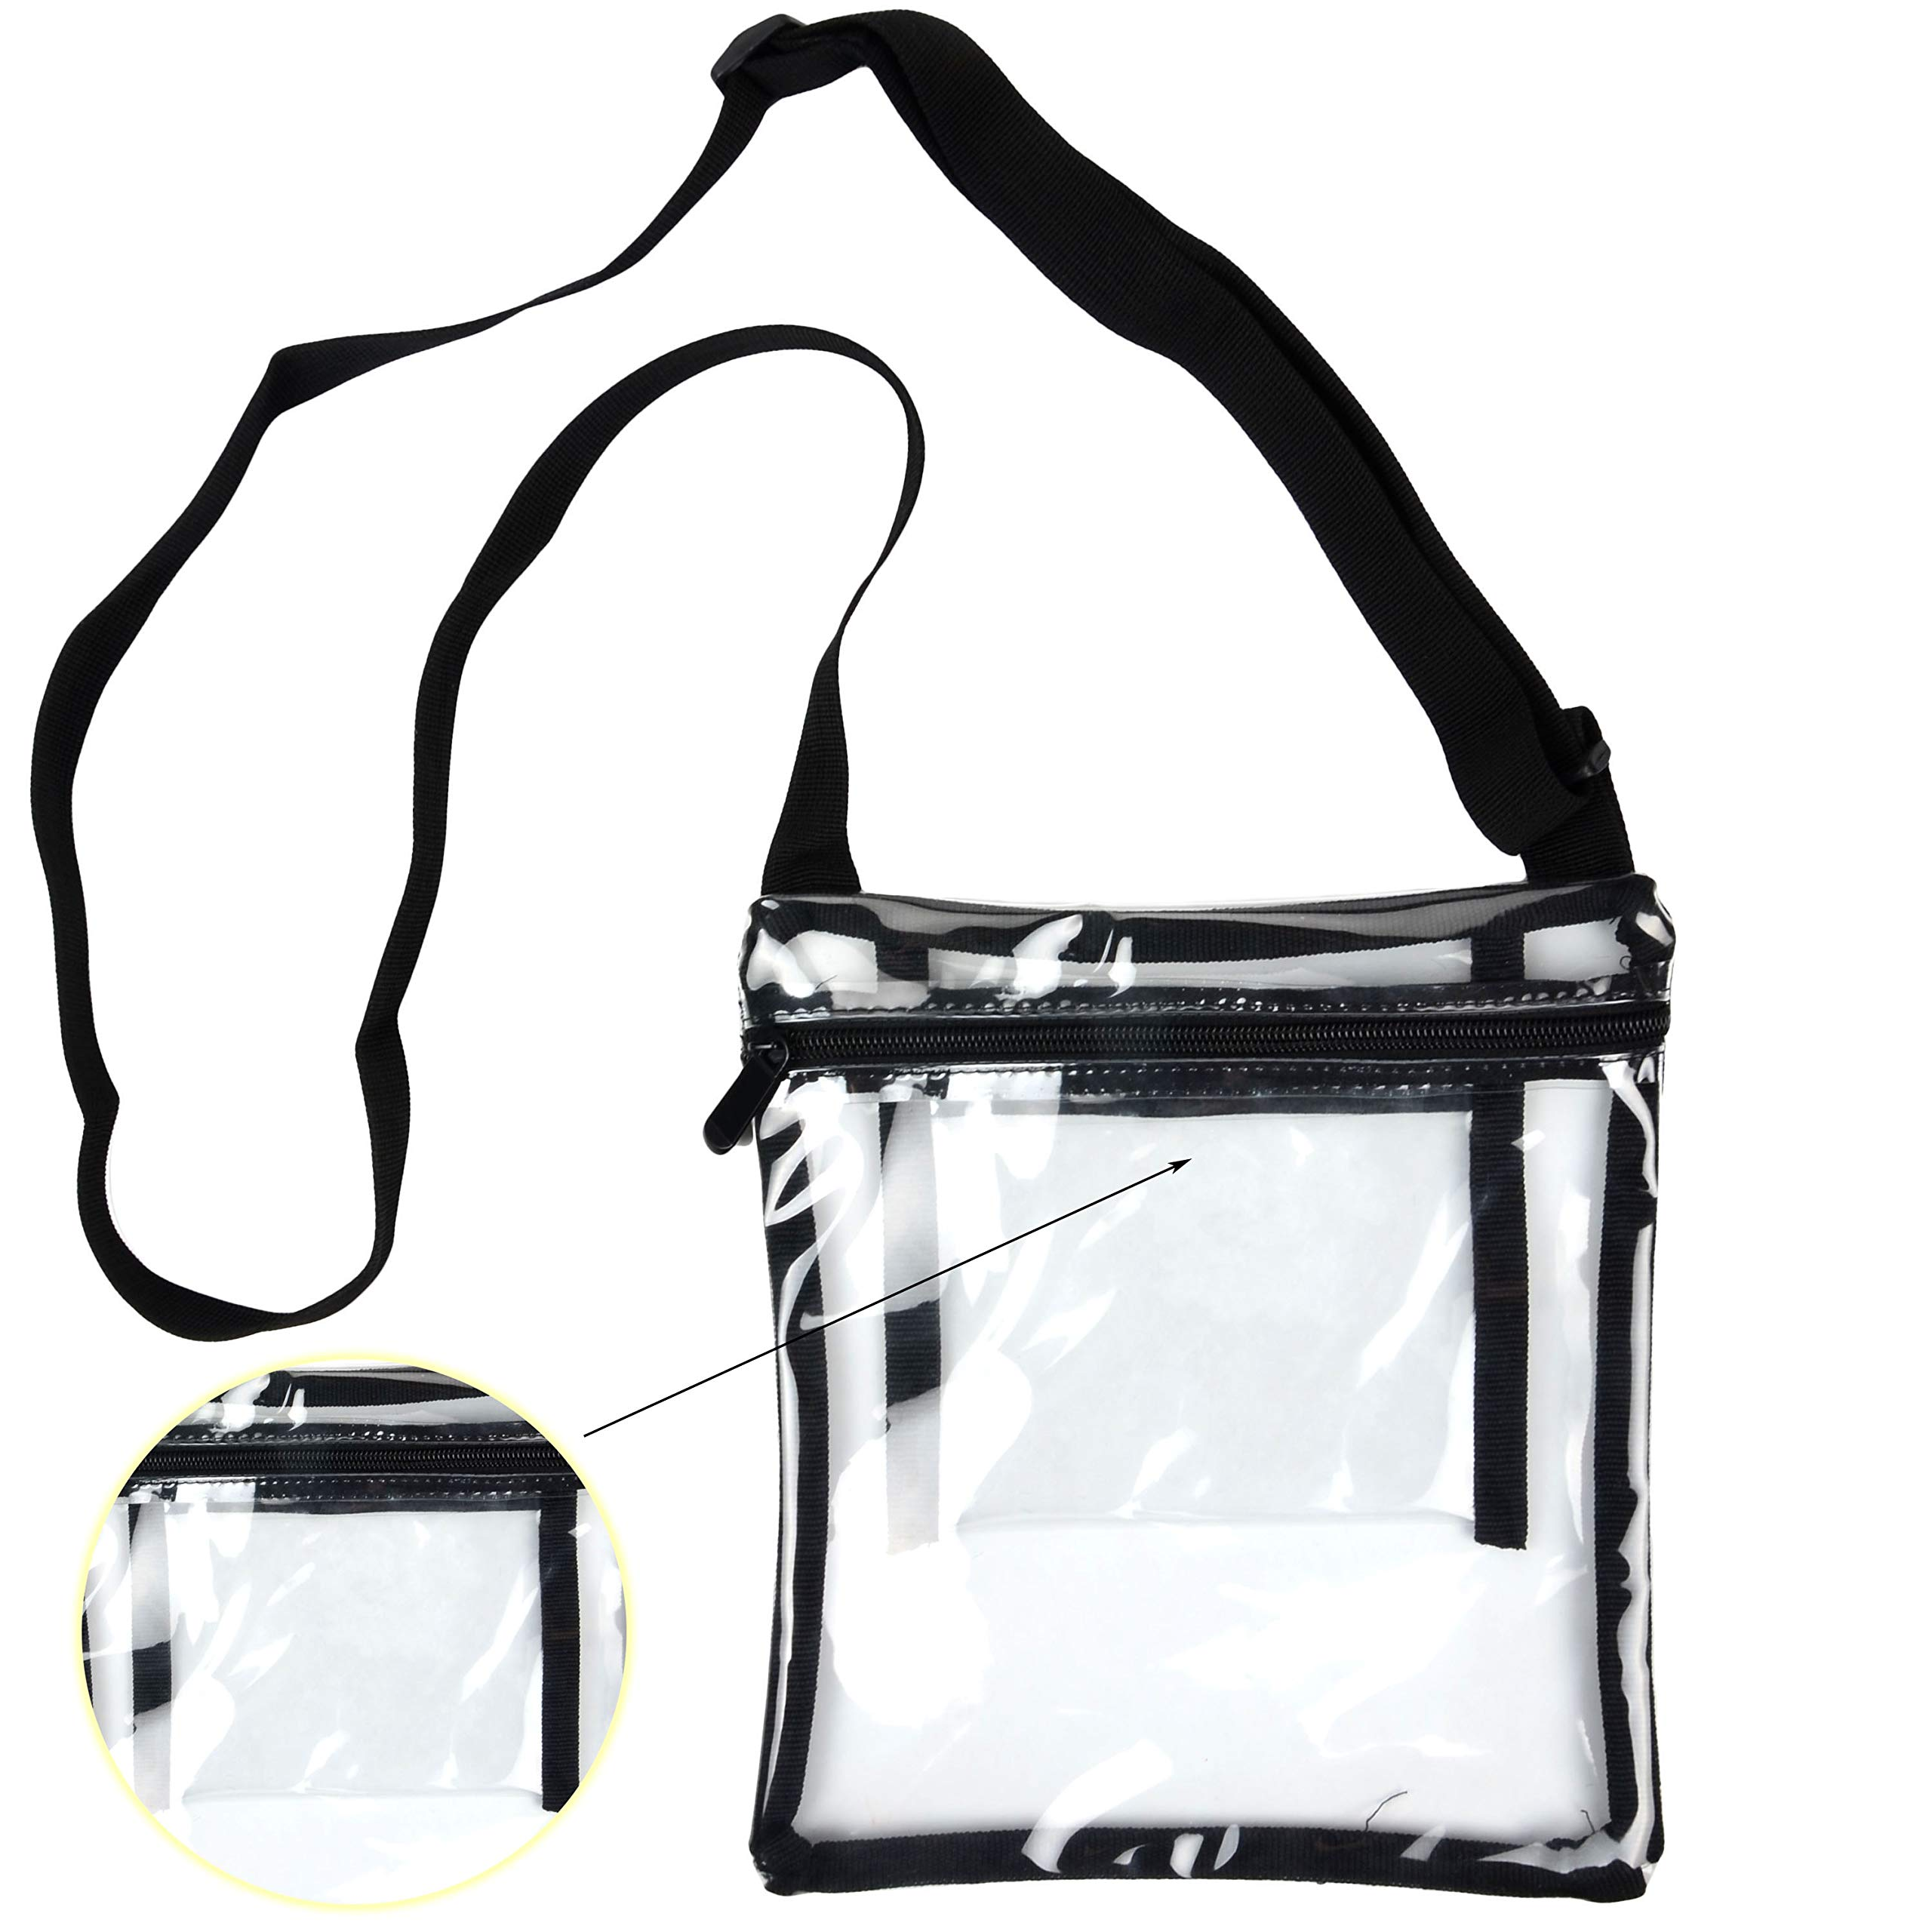 Youngever Deluxe Clear Cross-Body Purse, NFL and PGA Stadium Approved Clear Vinyl Bag - Adjustable Cross-Body Strap Clear Plastic Bag, Larger Size, Extra Inside Pocket